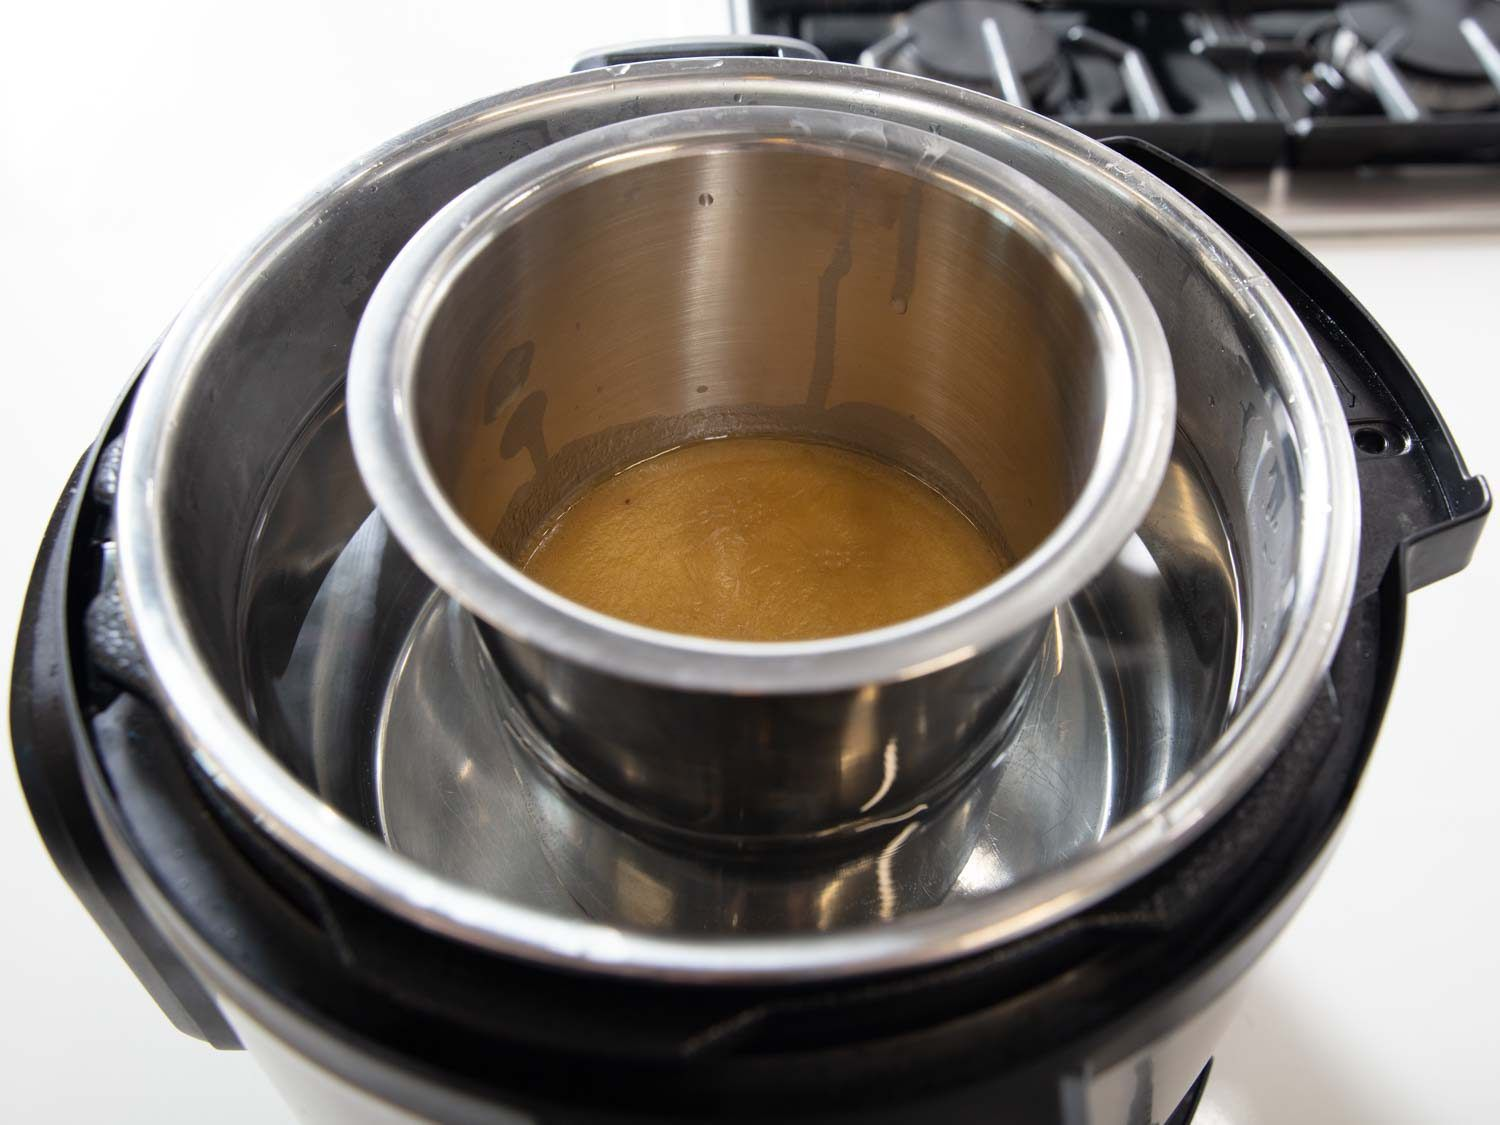 Here, a metal container holding gravy is sitting in a hot-water bath created using a multi-cooker set on its slow-cooker setting